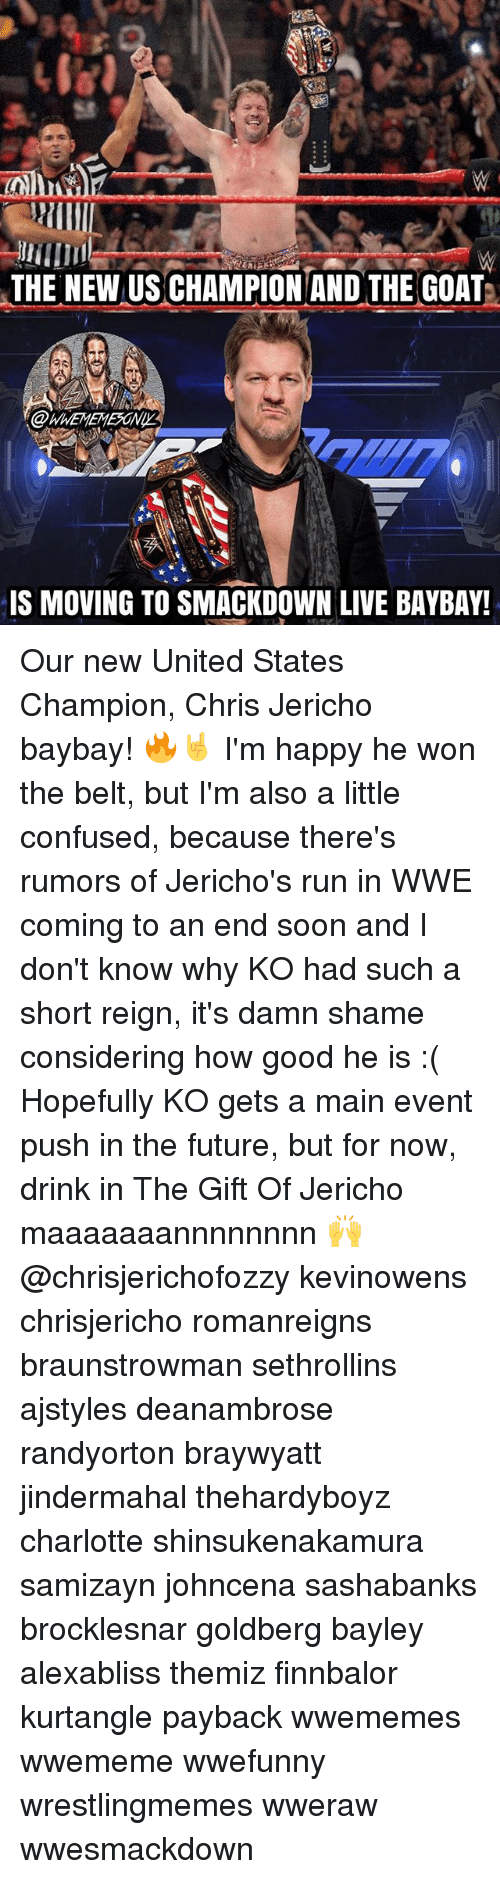 Main Event: THE NEW US CHAMPION AND THE GOAT  IS MOVING TO SMACKDOWN LIVE BAYBAY! Our new United States Champion, Chris Jericho baybay! 🔥🤘 I'm happy he won the belt, but I'm also a little confused, because there's rumors of Jericho's run in WWE coming to an end soon and I don't know why KO had such a short reign, it's damn shame considering how good he is :( Hopefully KO gets a main event push in the future, but for now, drink in The Gift Of Jericho maaaaaaannnnnnnn 🙌 @chrisjerichofozzy kevinowens chrisjericho romanreigns braunstrowman sethrollins ajstyles deanambrose randyorton braywyatt jindermahal thehardyboyz charlotte shinsukenakamura samizayn johncena sashabanks brocklesnar goldberg bayley alexabliss themiz finnbalor kurtangle payback wwememes wwememe wwefunny wrestlingmemes wweraw wwesmackdown